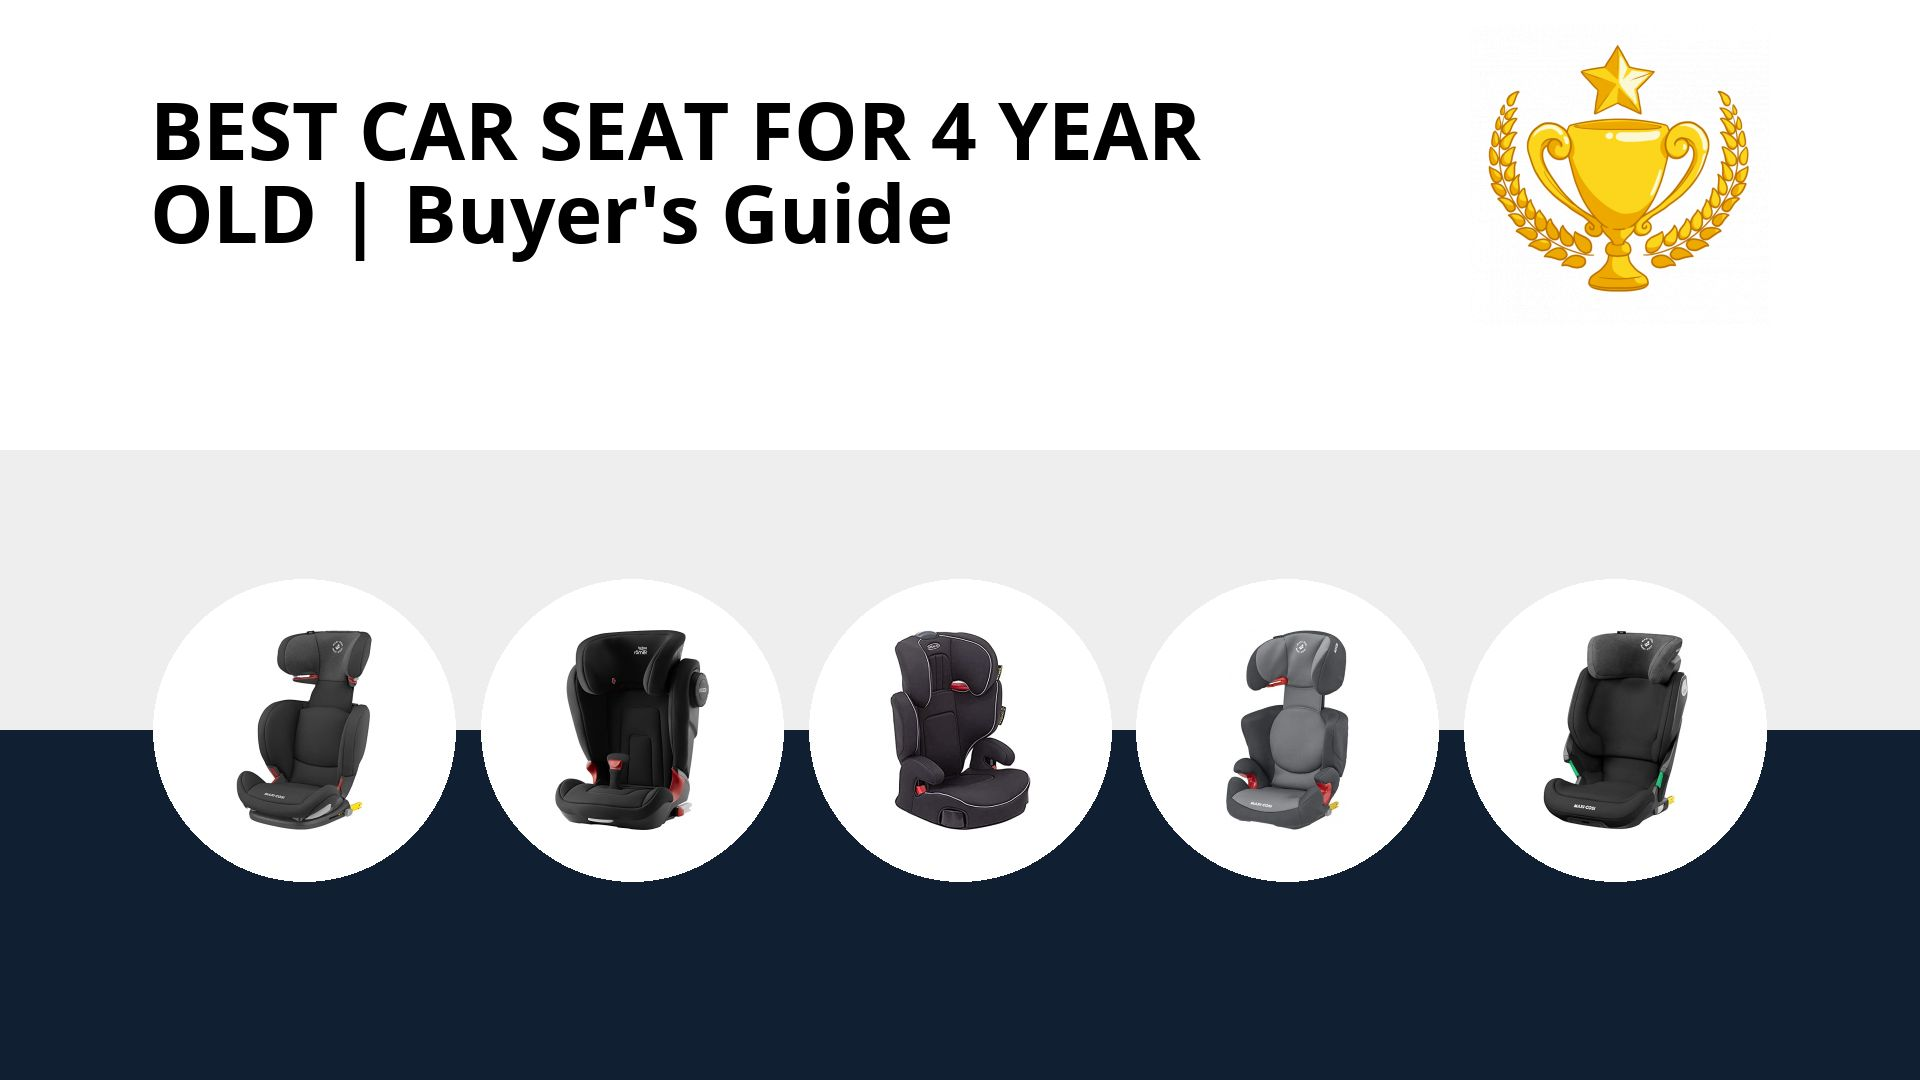 Best Car Seat For 4 Year Old: image